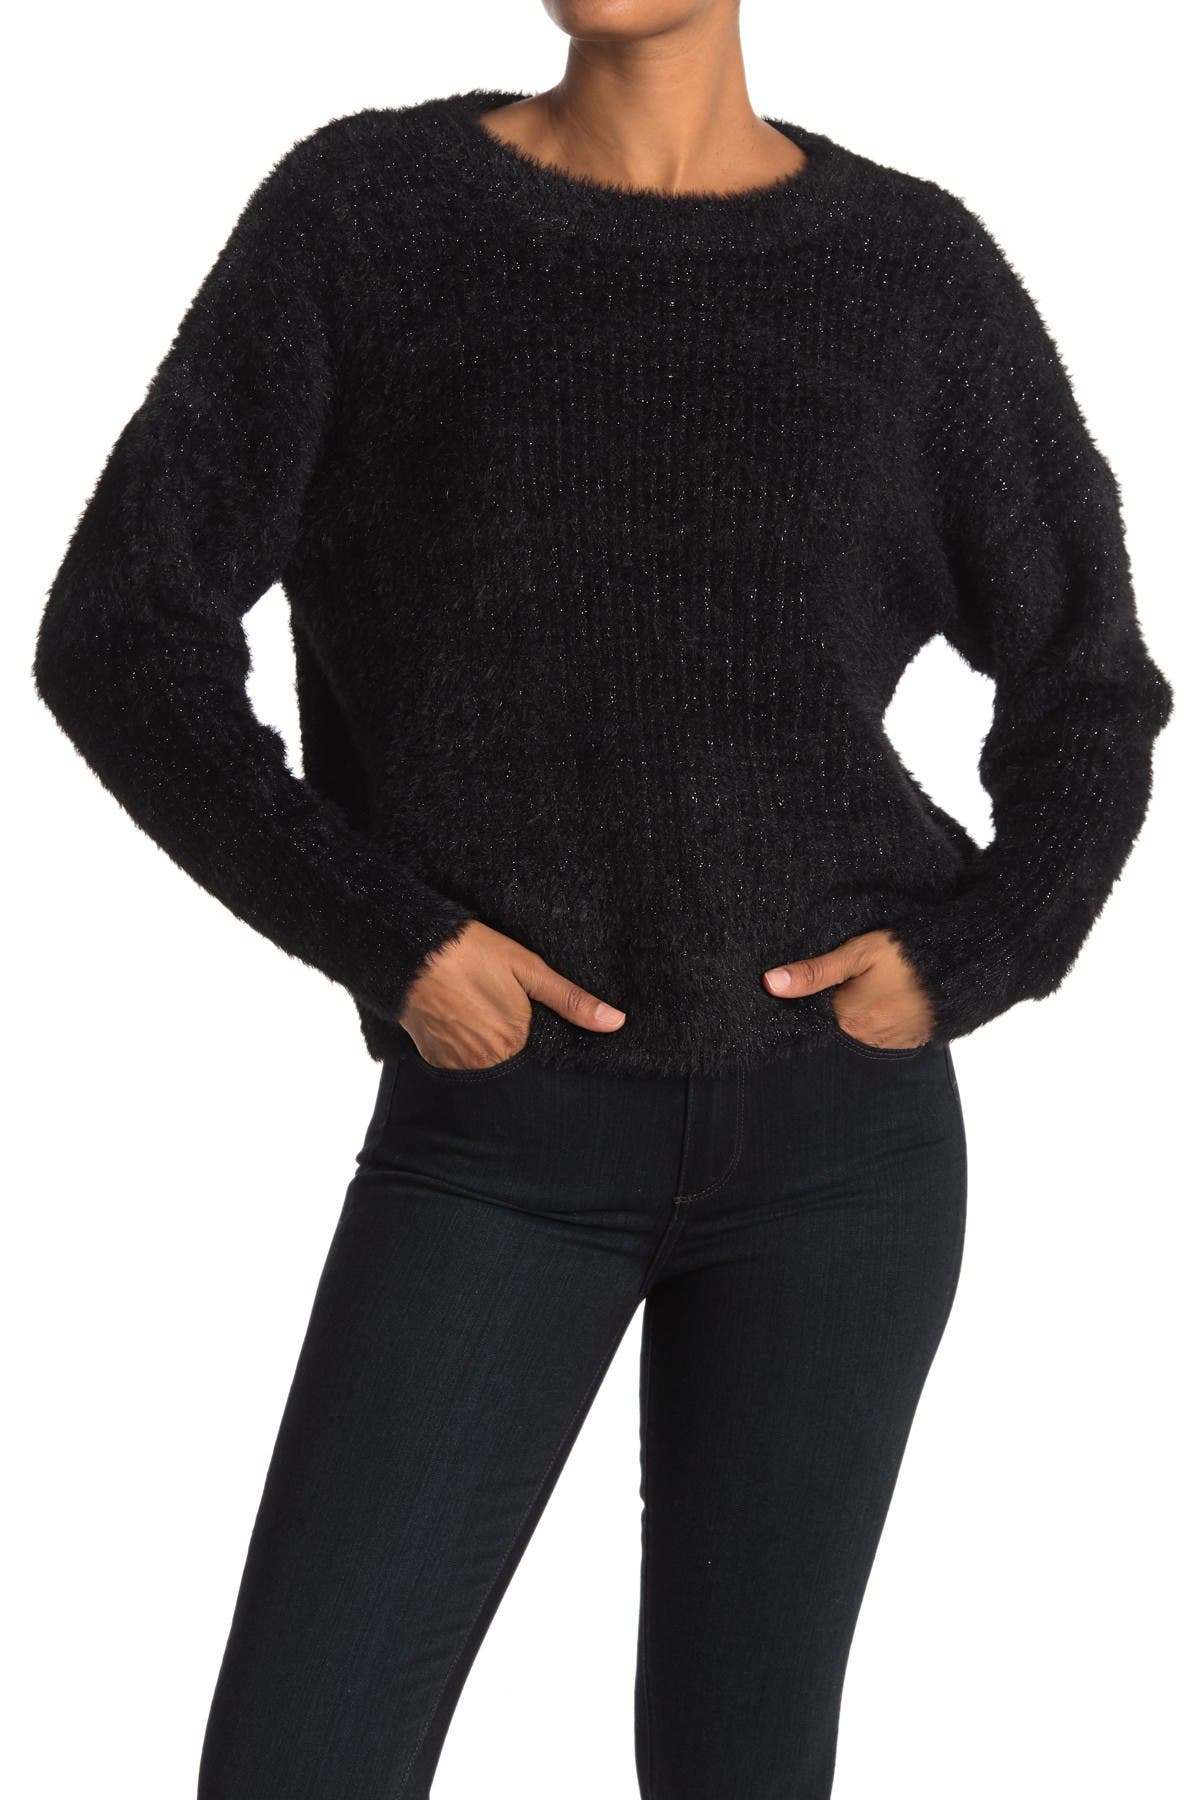 Image of FRNCH Cropped Crew Neck Sweater